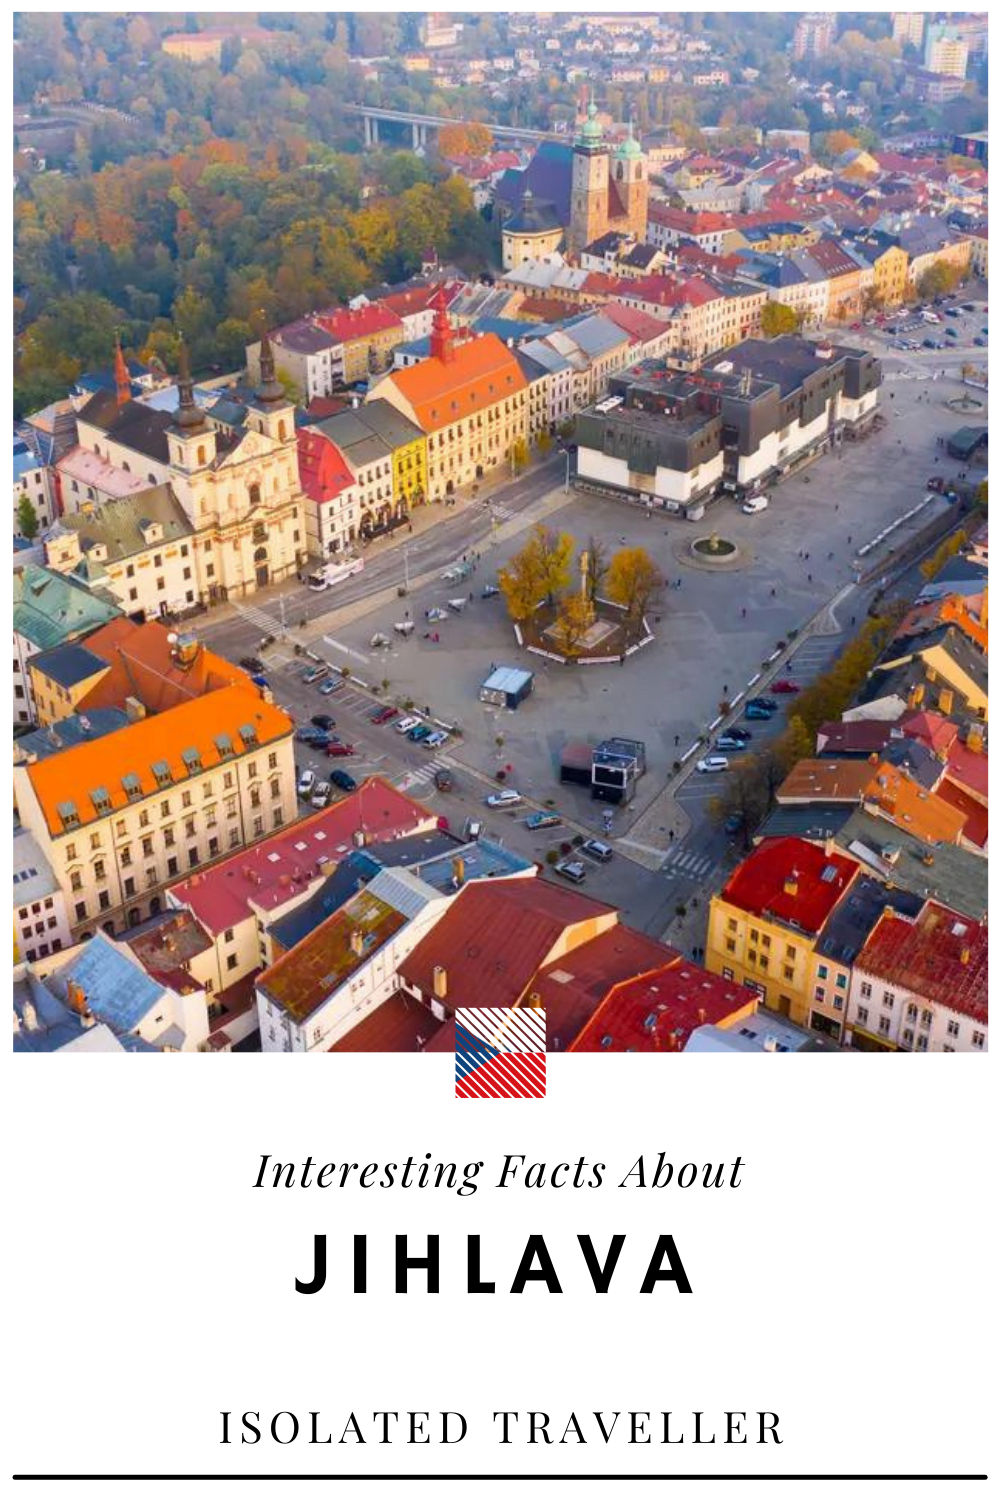 Facts About Jihlava